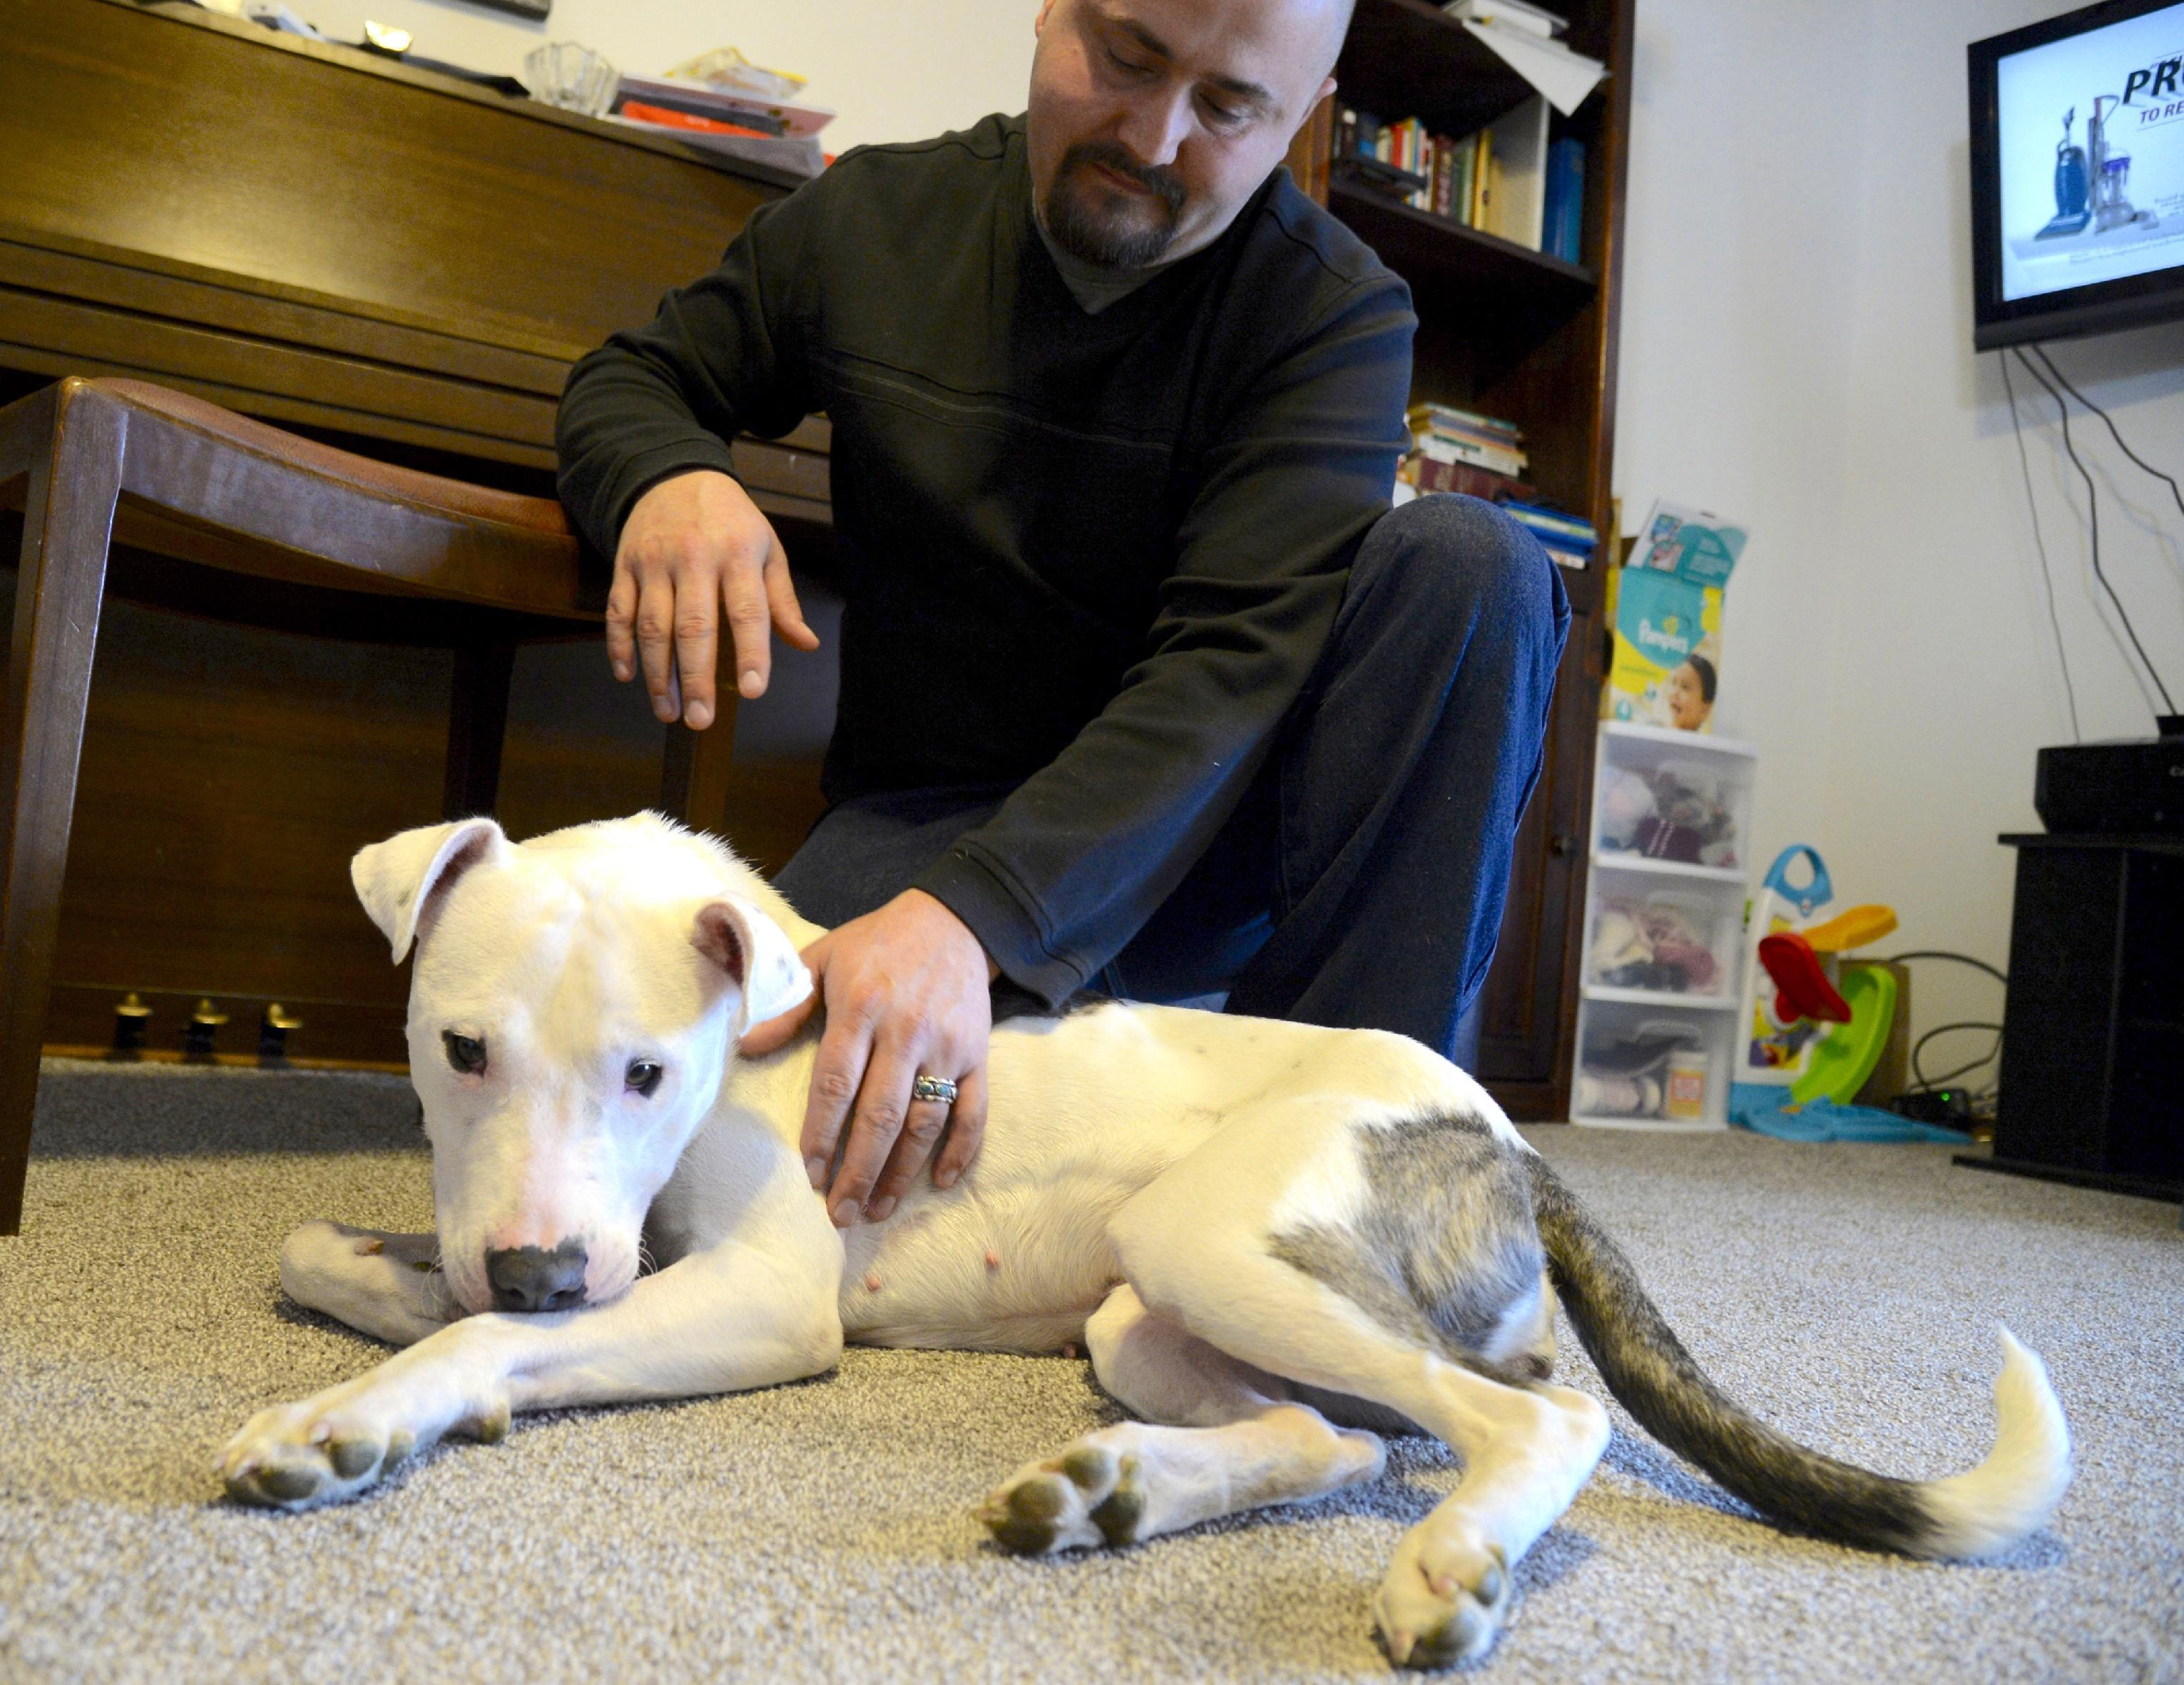 'Miracle dog' survives being hit by car, clubbed, abandoned